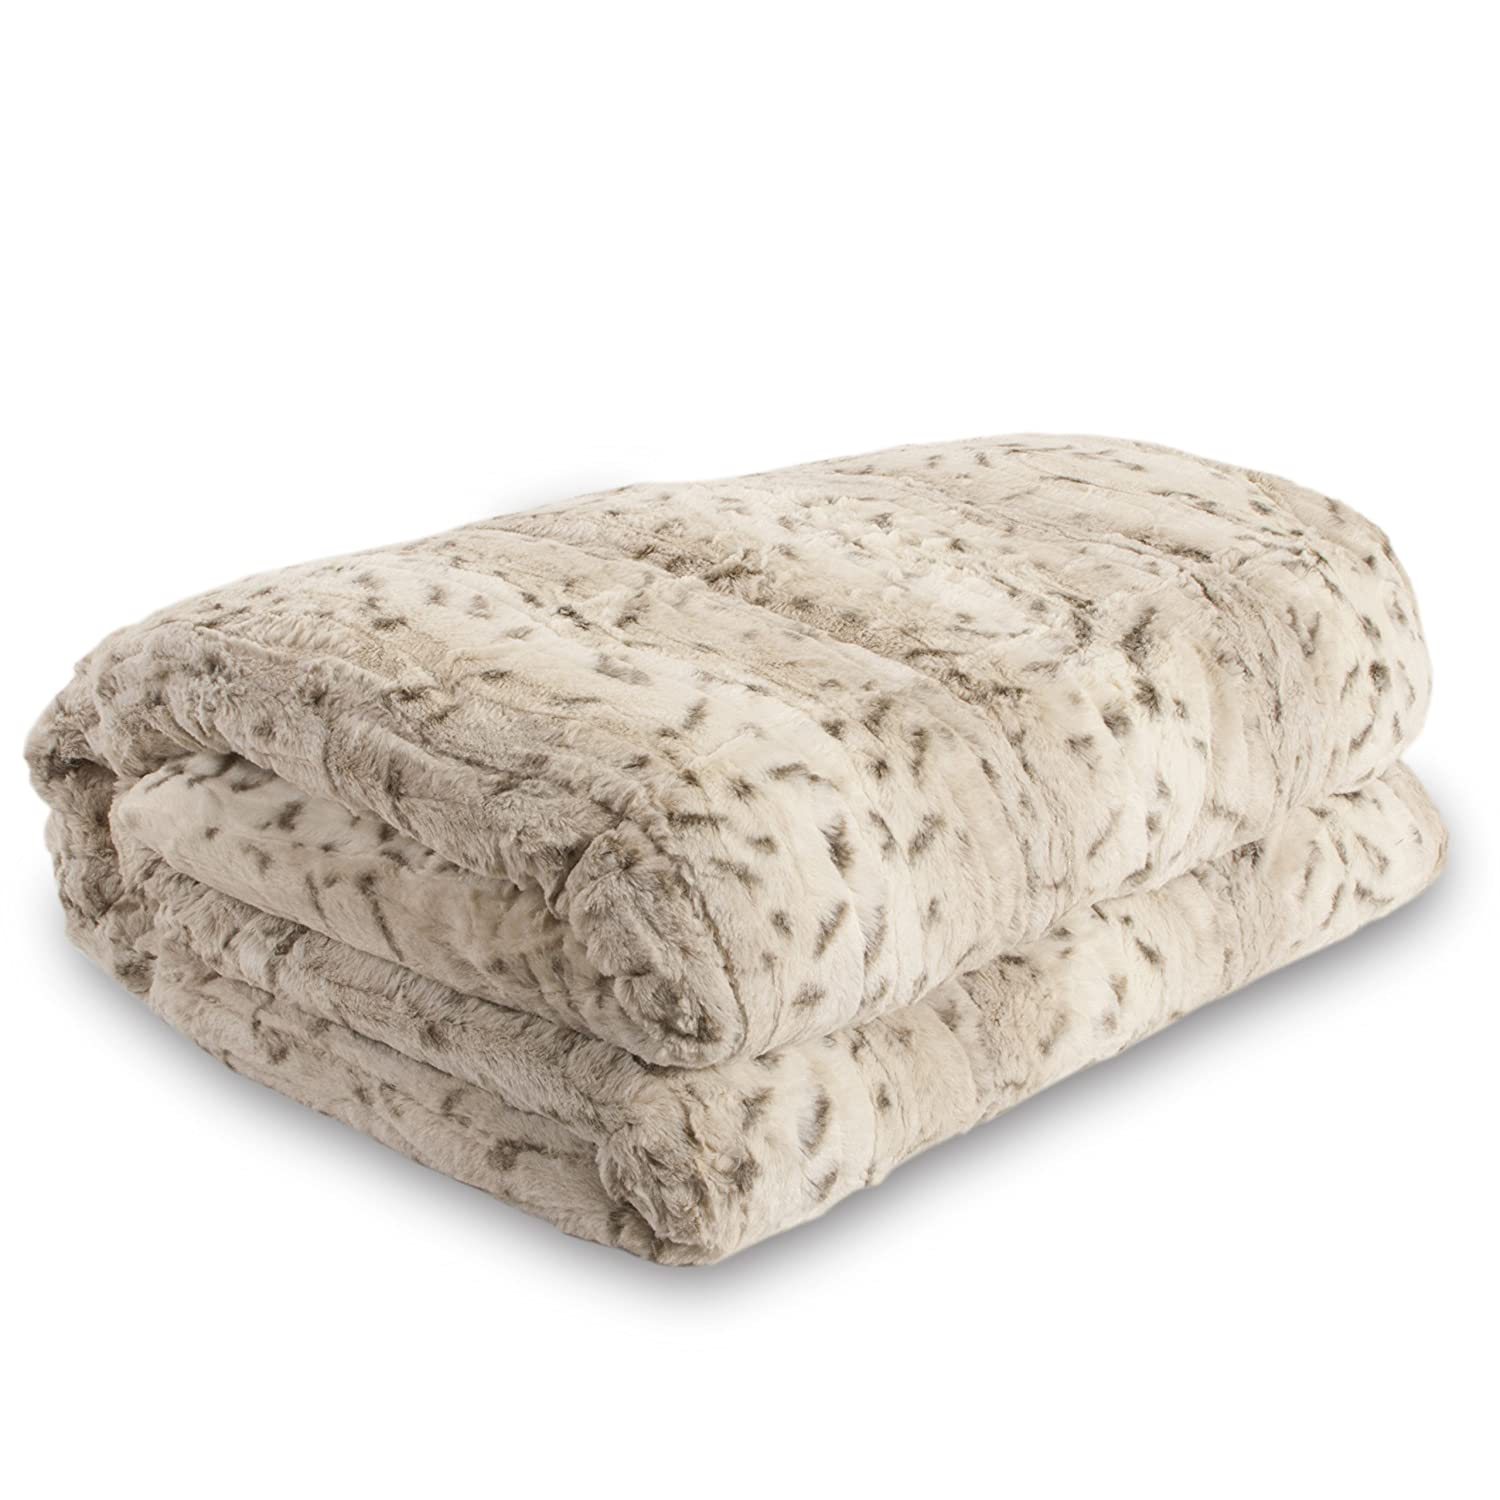 Lucy's Luxury Bellahome Safari Faux Fur Plush Throw Blanket Comforter, King